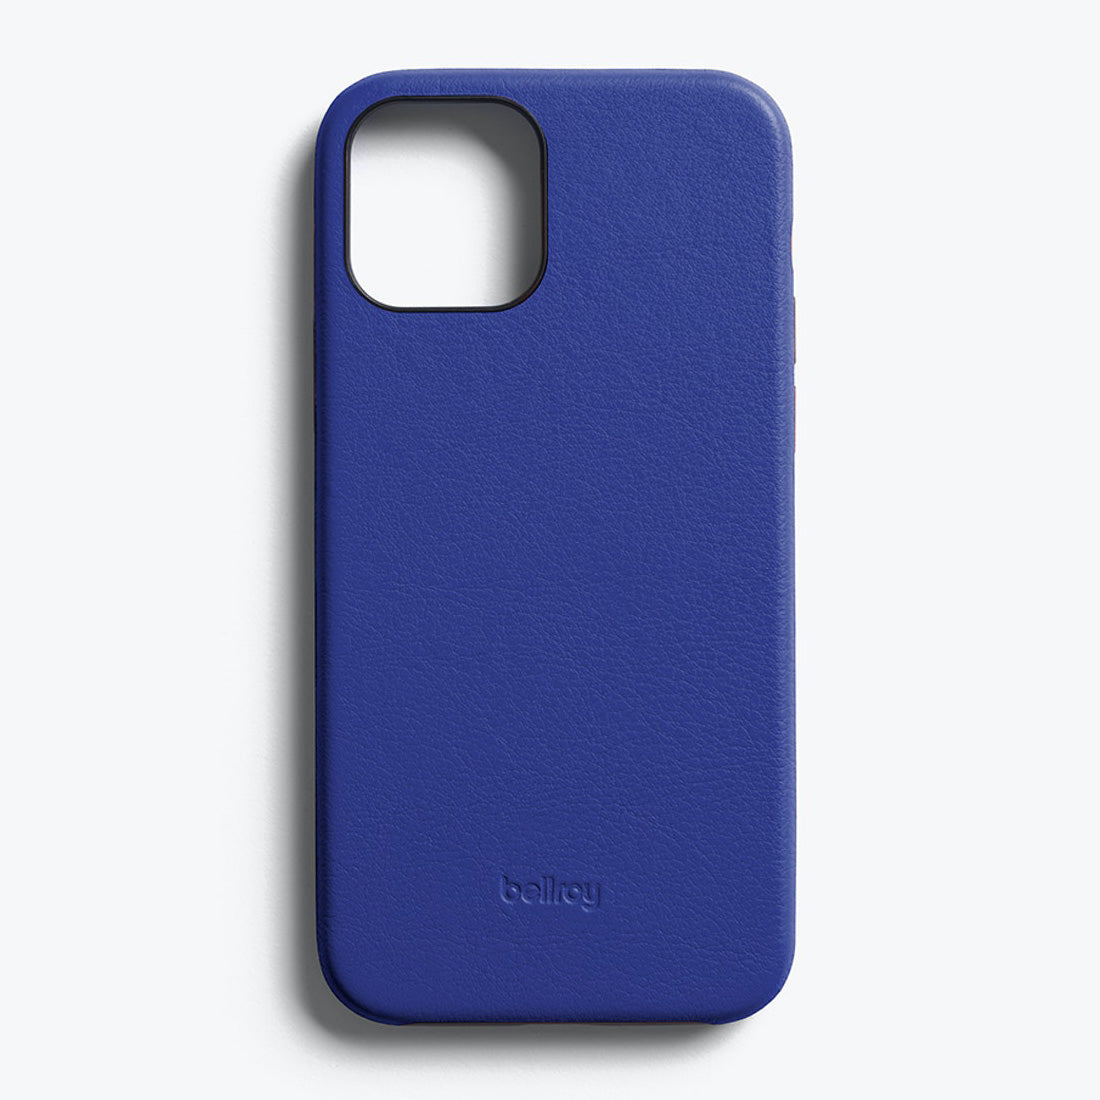 Bellroy Slim Genuine Leather Case For iPhone iPhone 12 Pro Max - COBALT